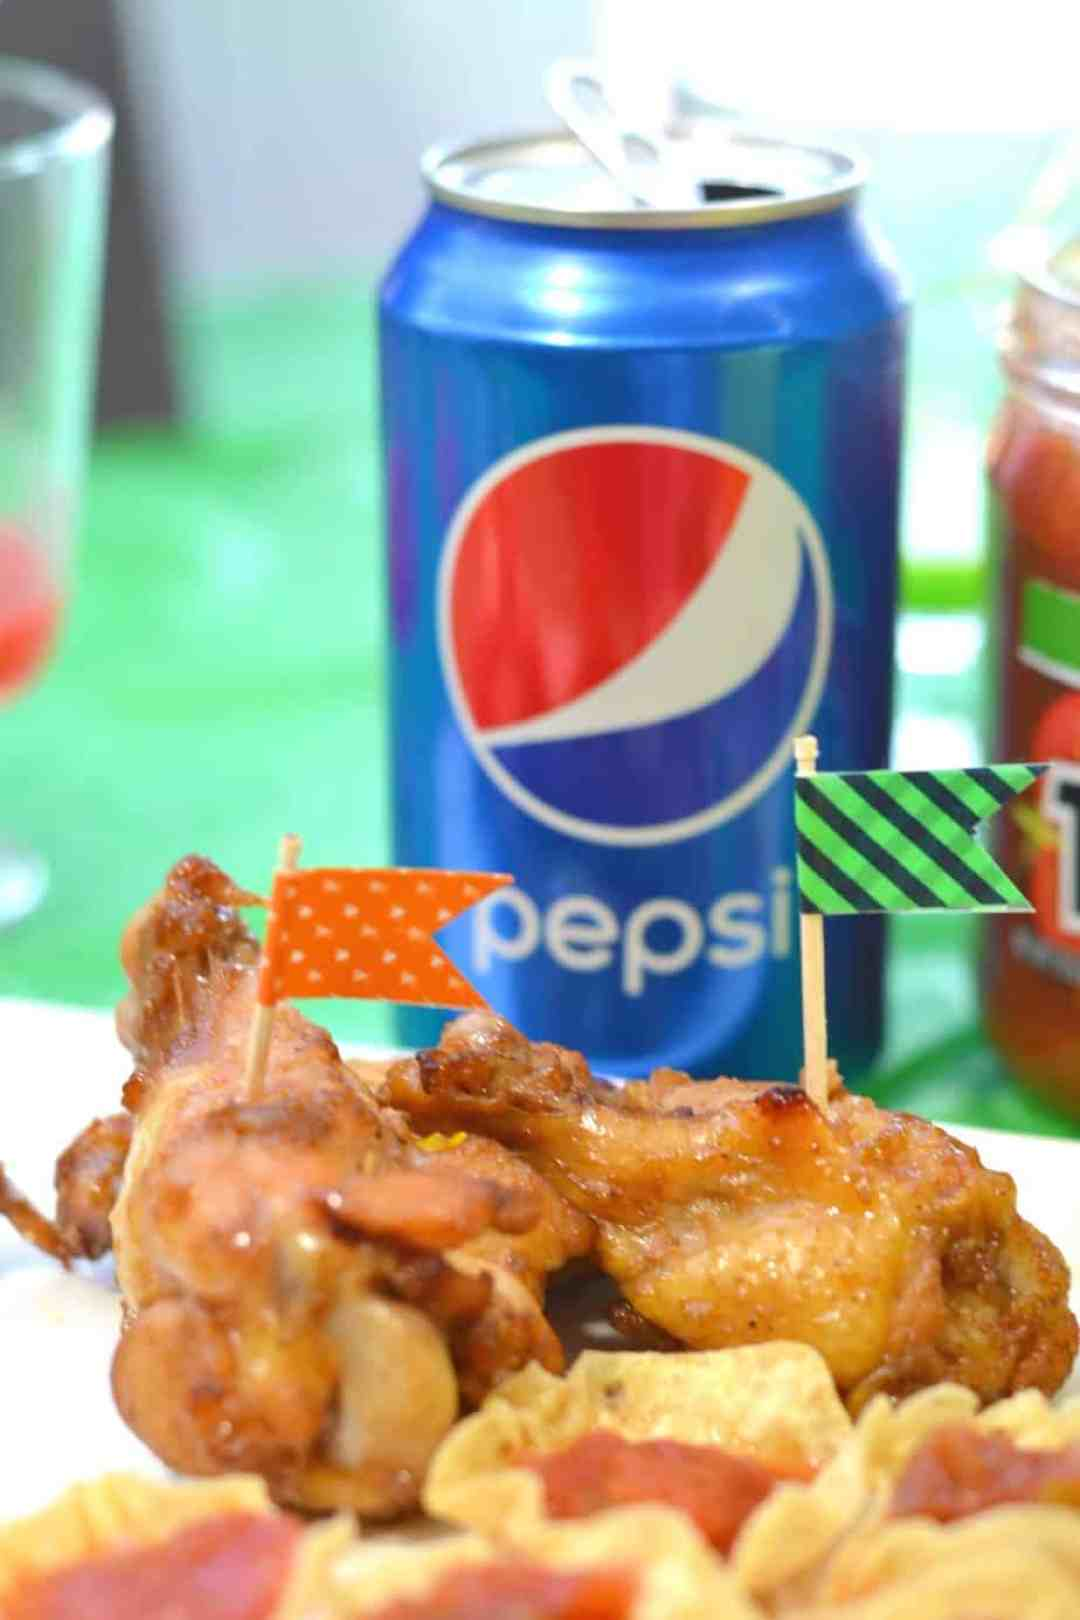 Pepsi glazed chicken